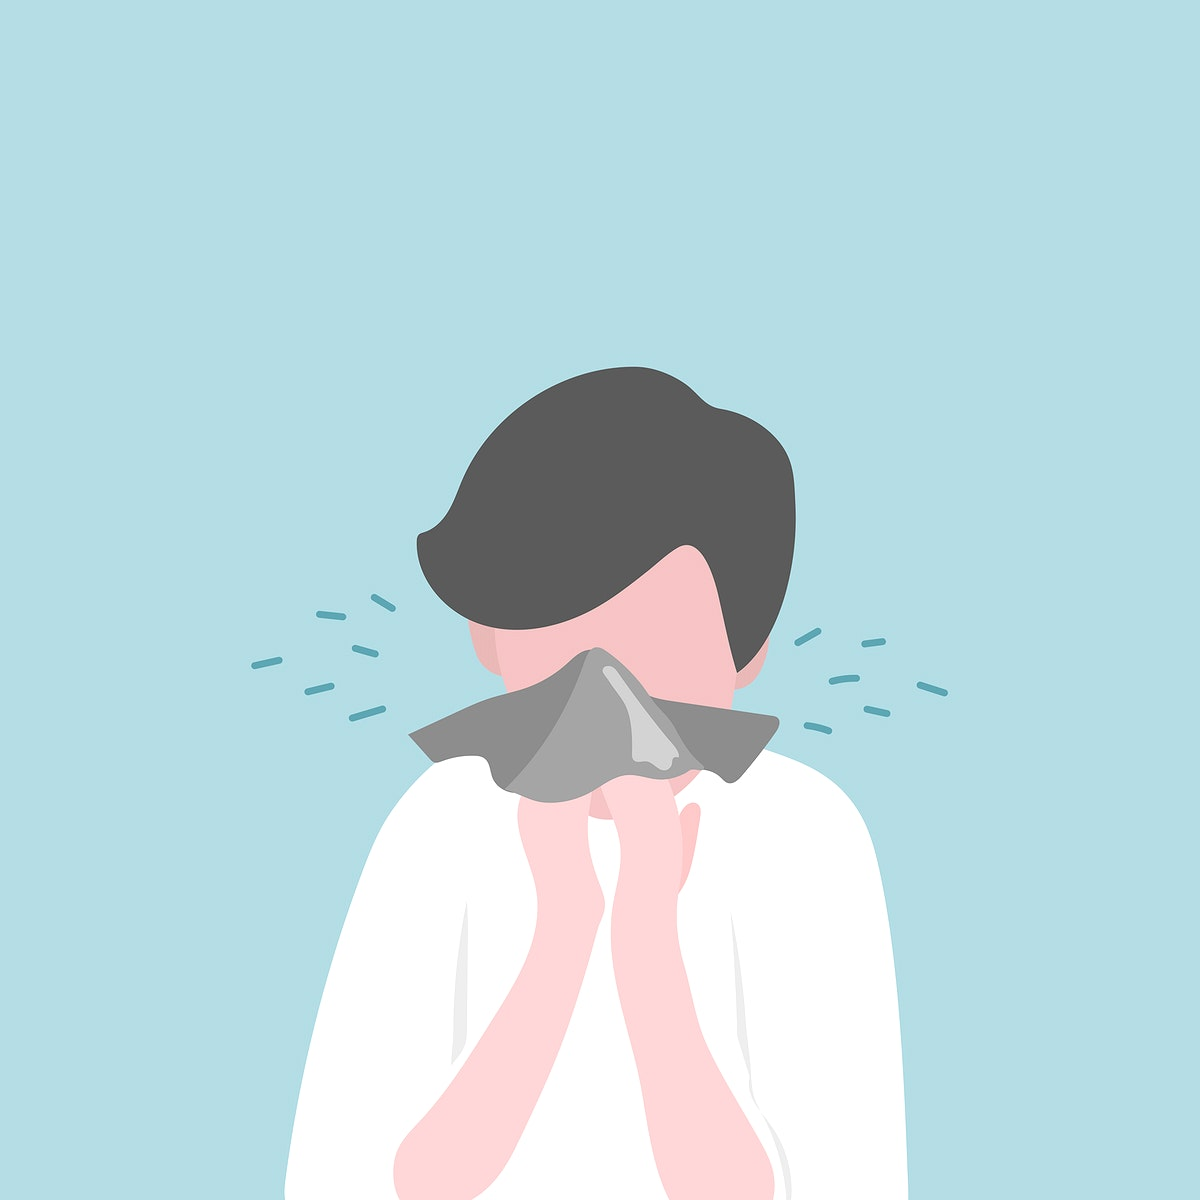 Man infected with covid 19 virus coughing into tissue illustration